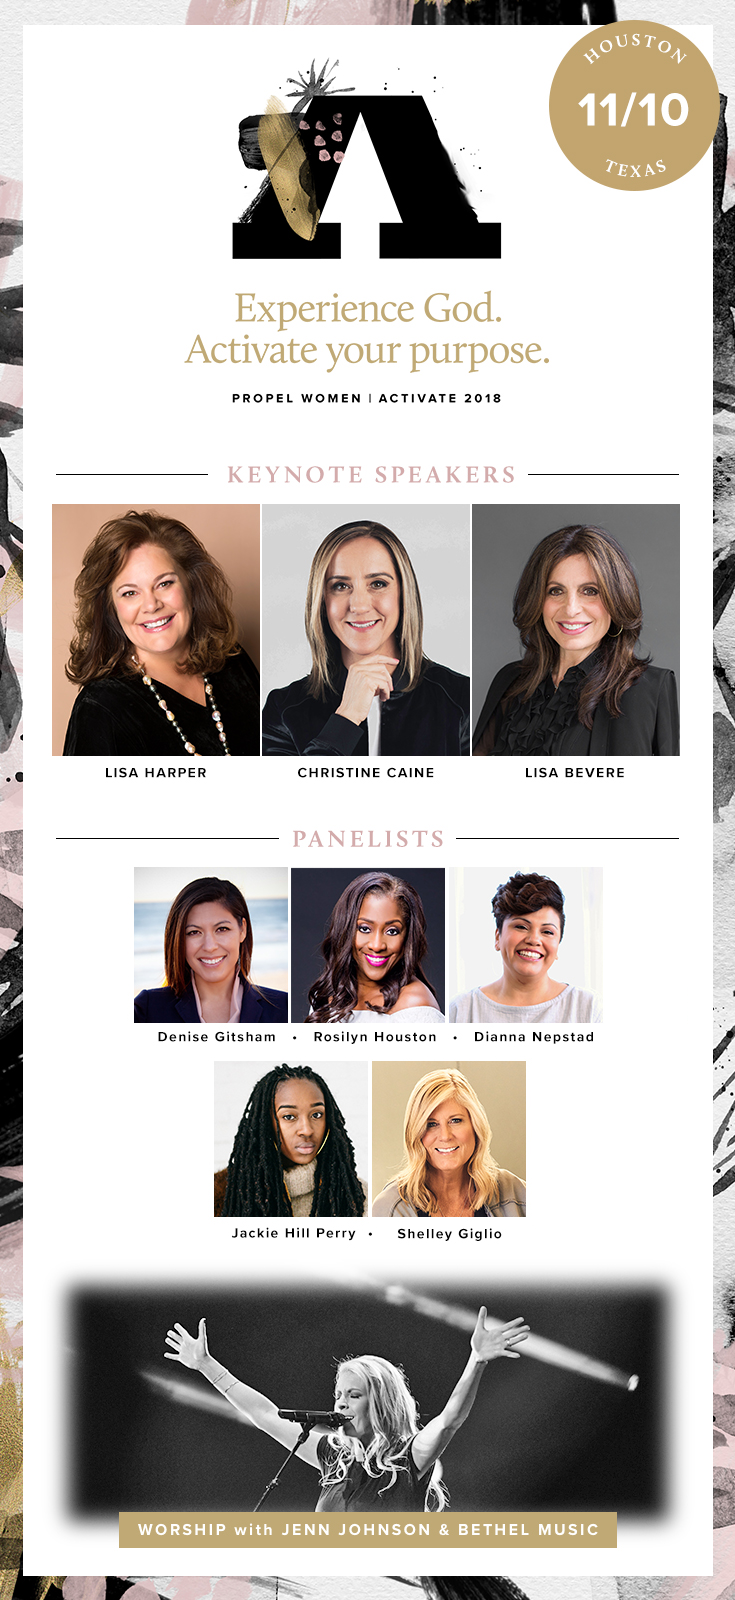 Houston, TX Propel Women Activate 2018